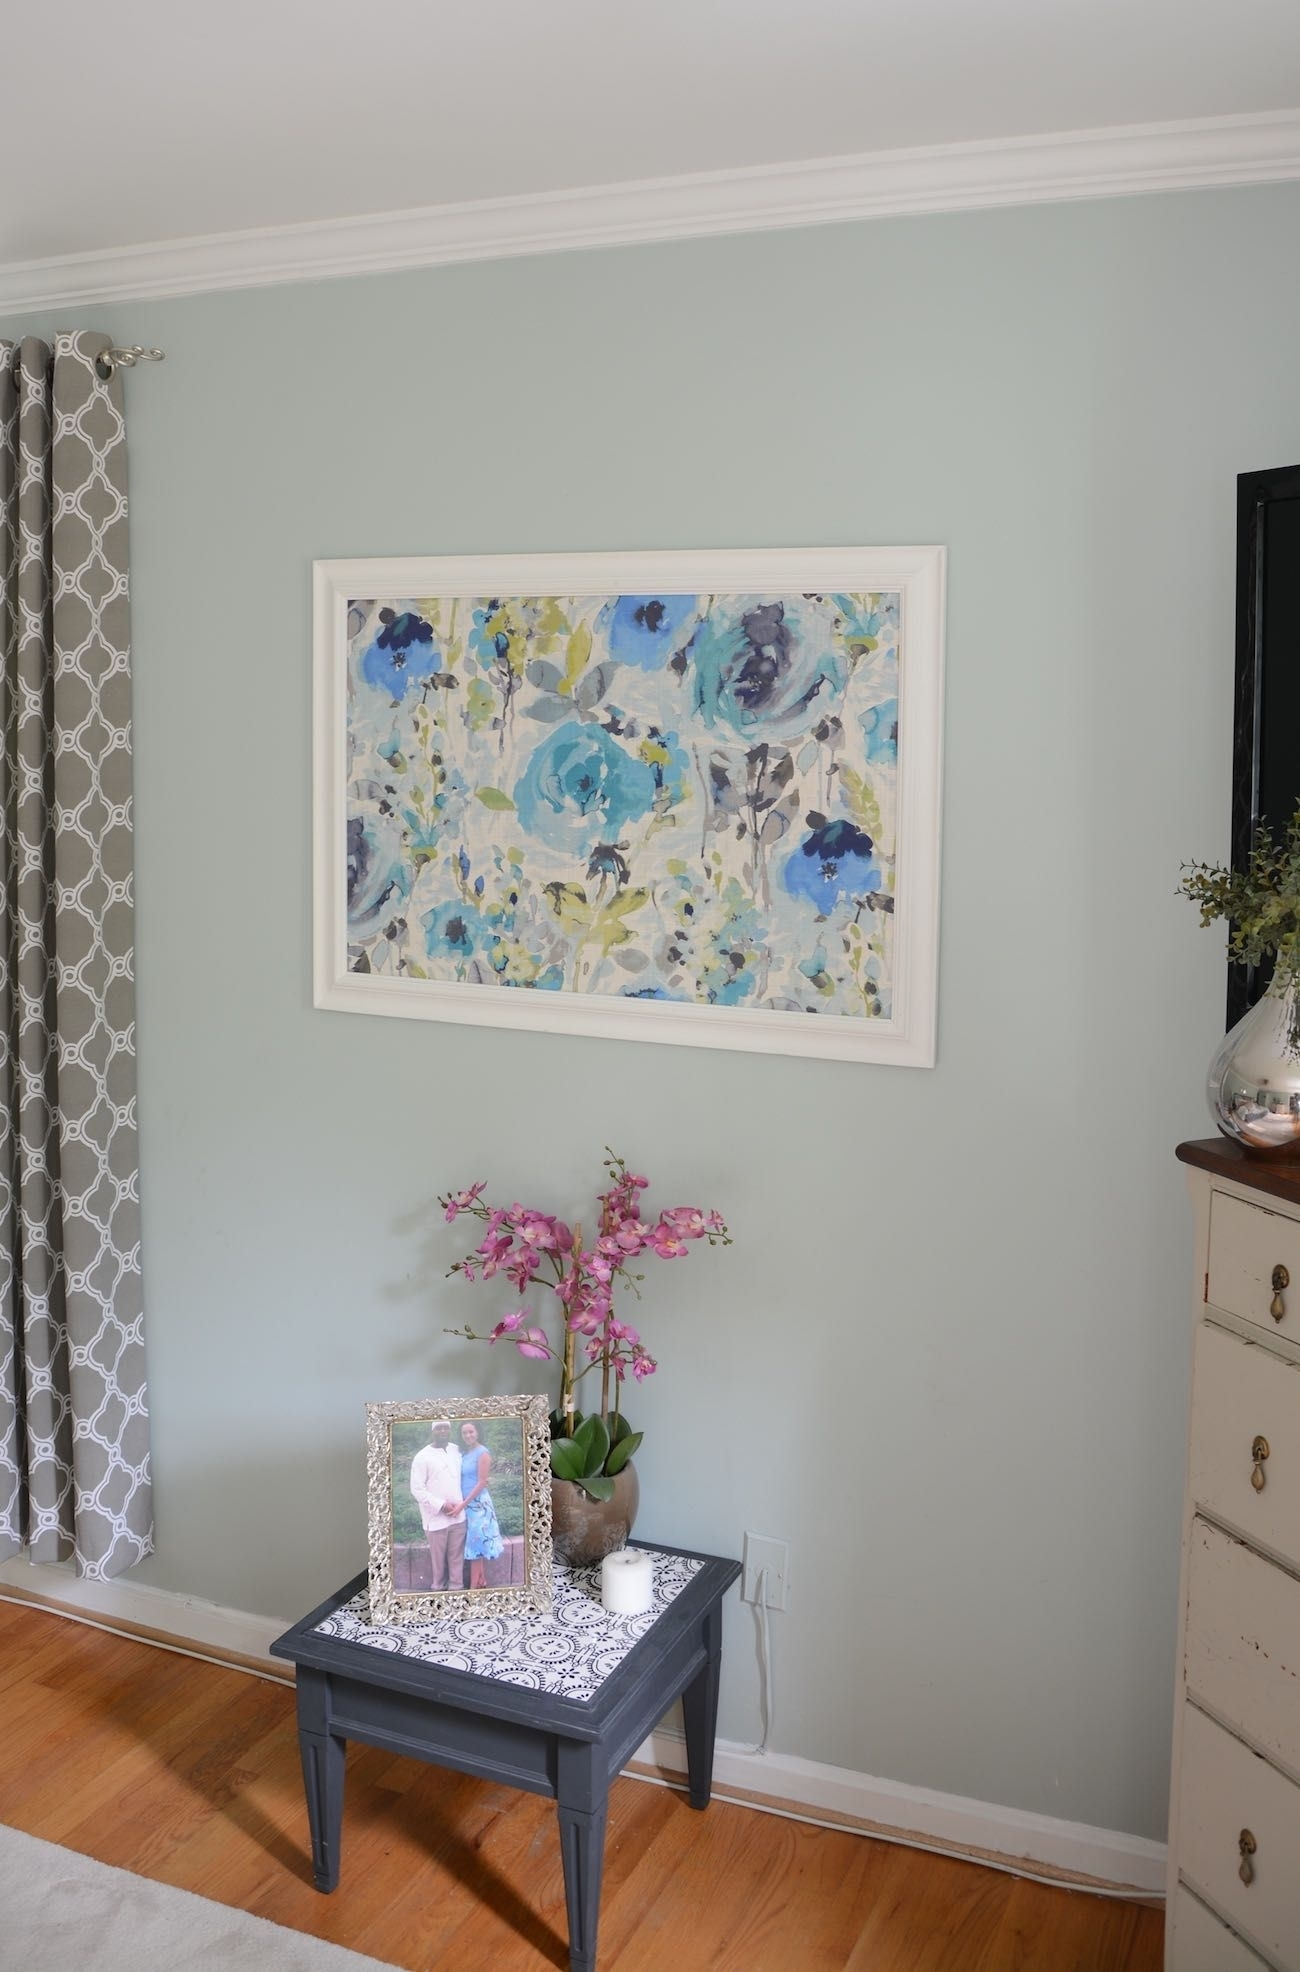 How To Frame Fabric For Wall Art With A Picture Frame | Inexpensive Regarding 2018 Inexpensive Wall Art (Gallery 8 of 20)